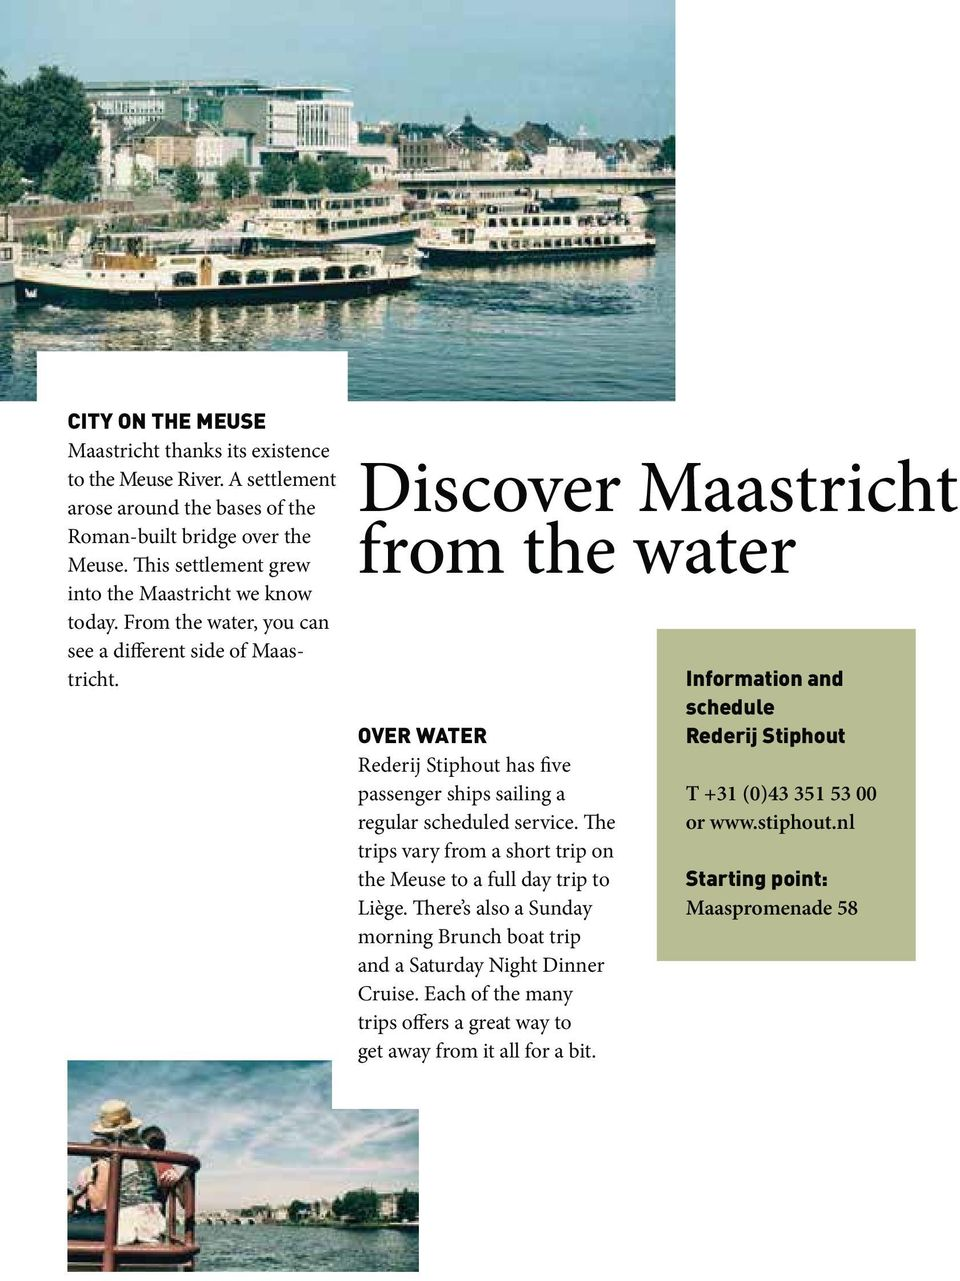 Discover Maastricht from the water OVER WATER Rederij Stiphout has five passenger ships sailing a regular scheduled service.